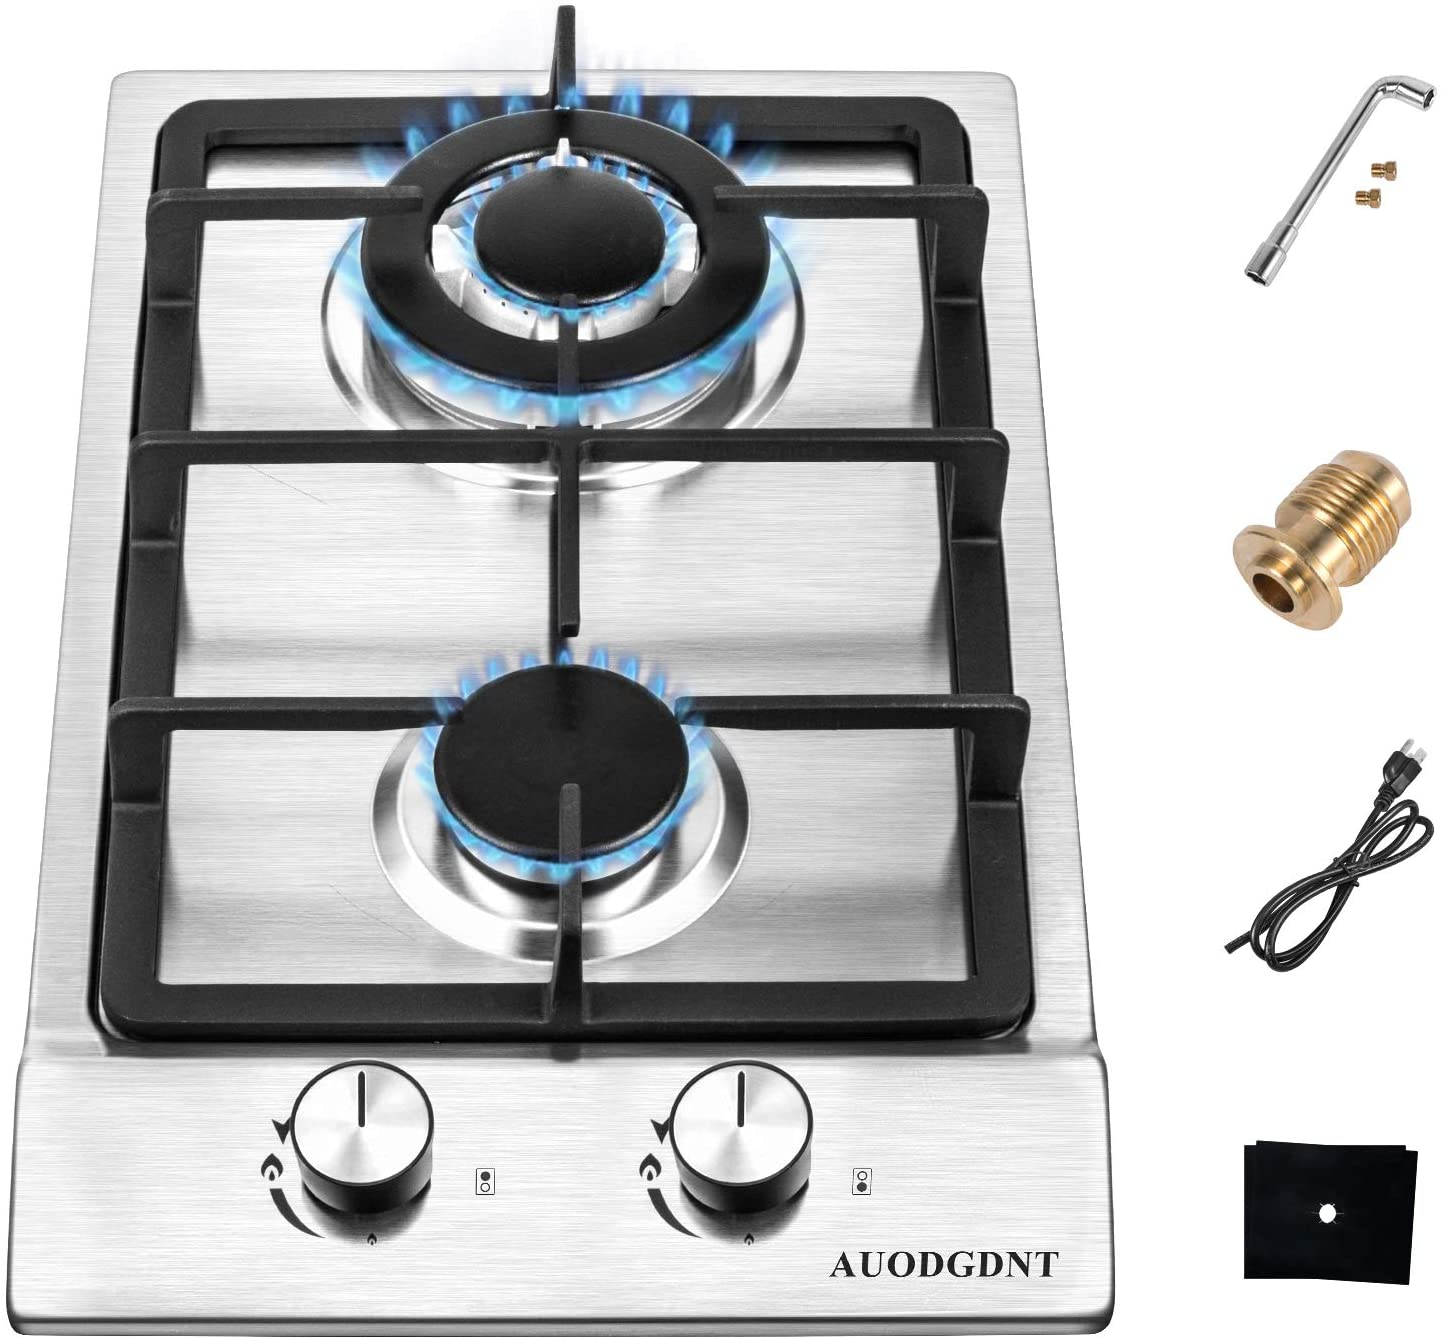 Review of GDNT Gas Stove Gas Cooktop 2 Burners,12 Inches Portable